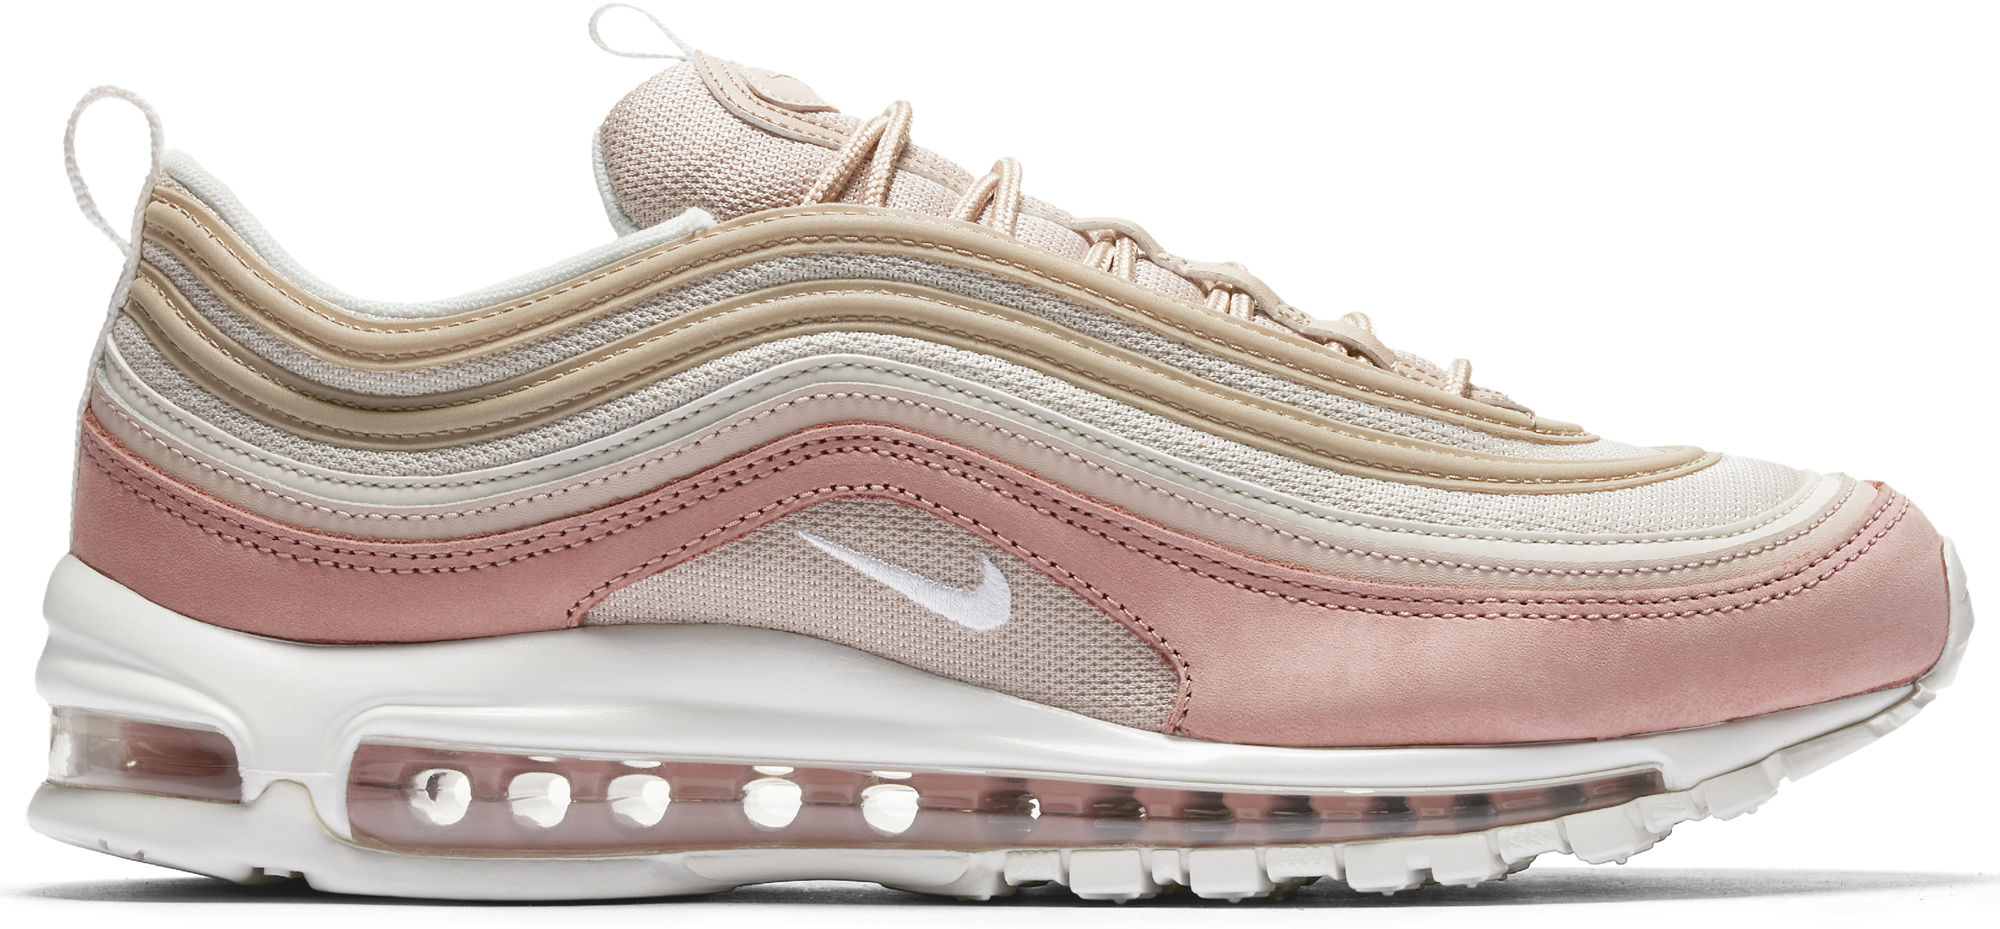 info for b072f 4c15b Exclusive Air Max 97 Cladem